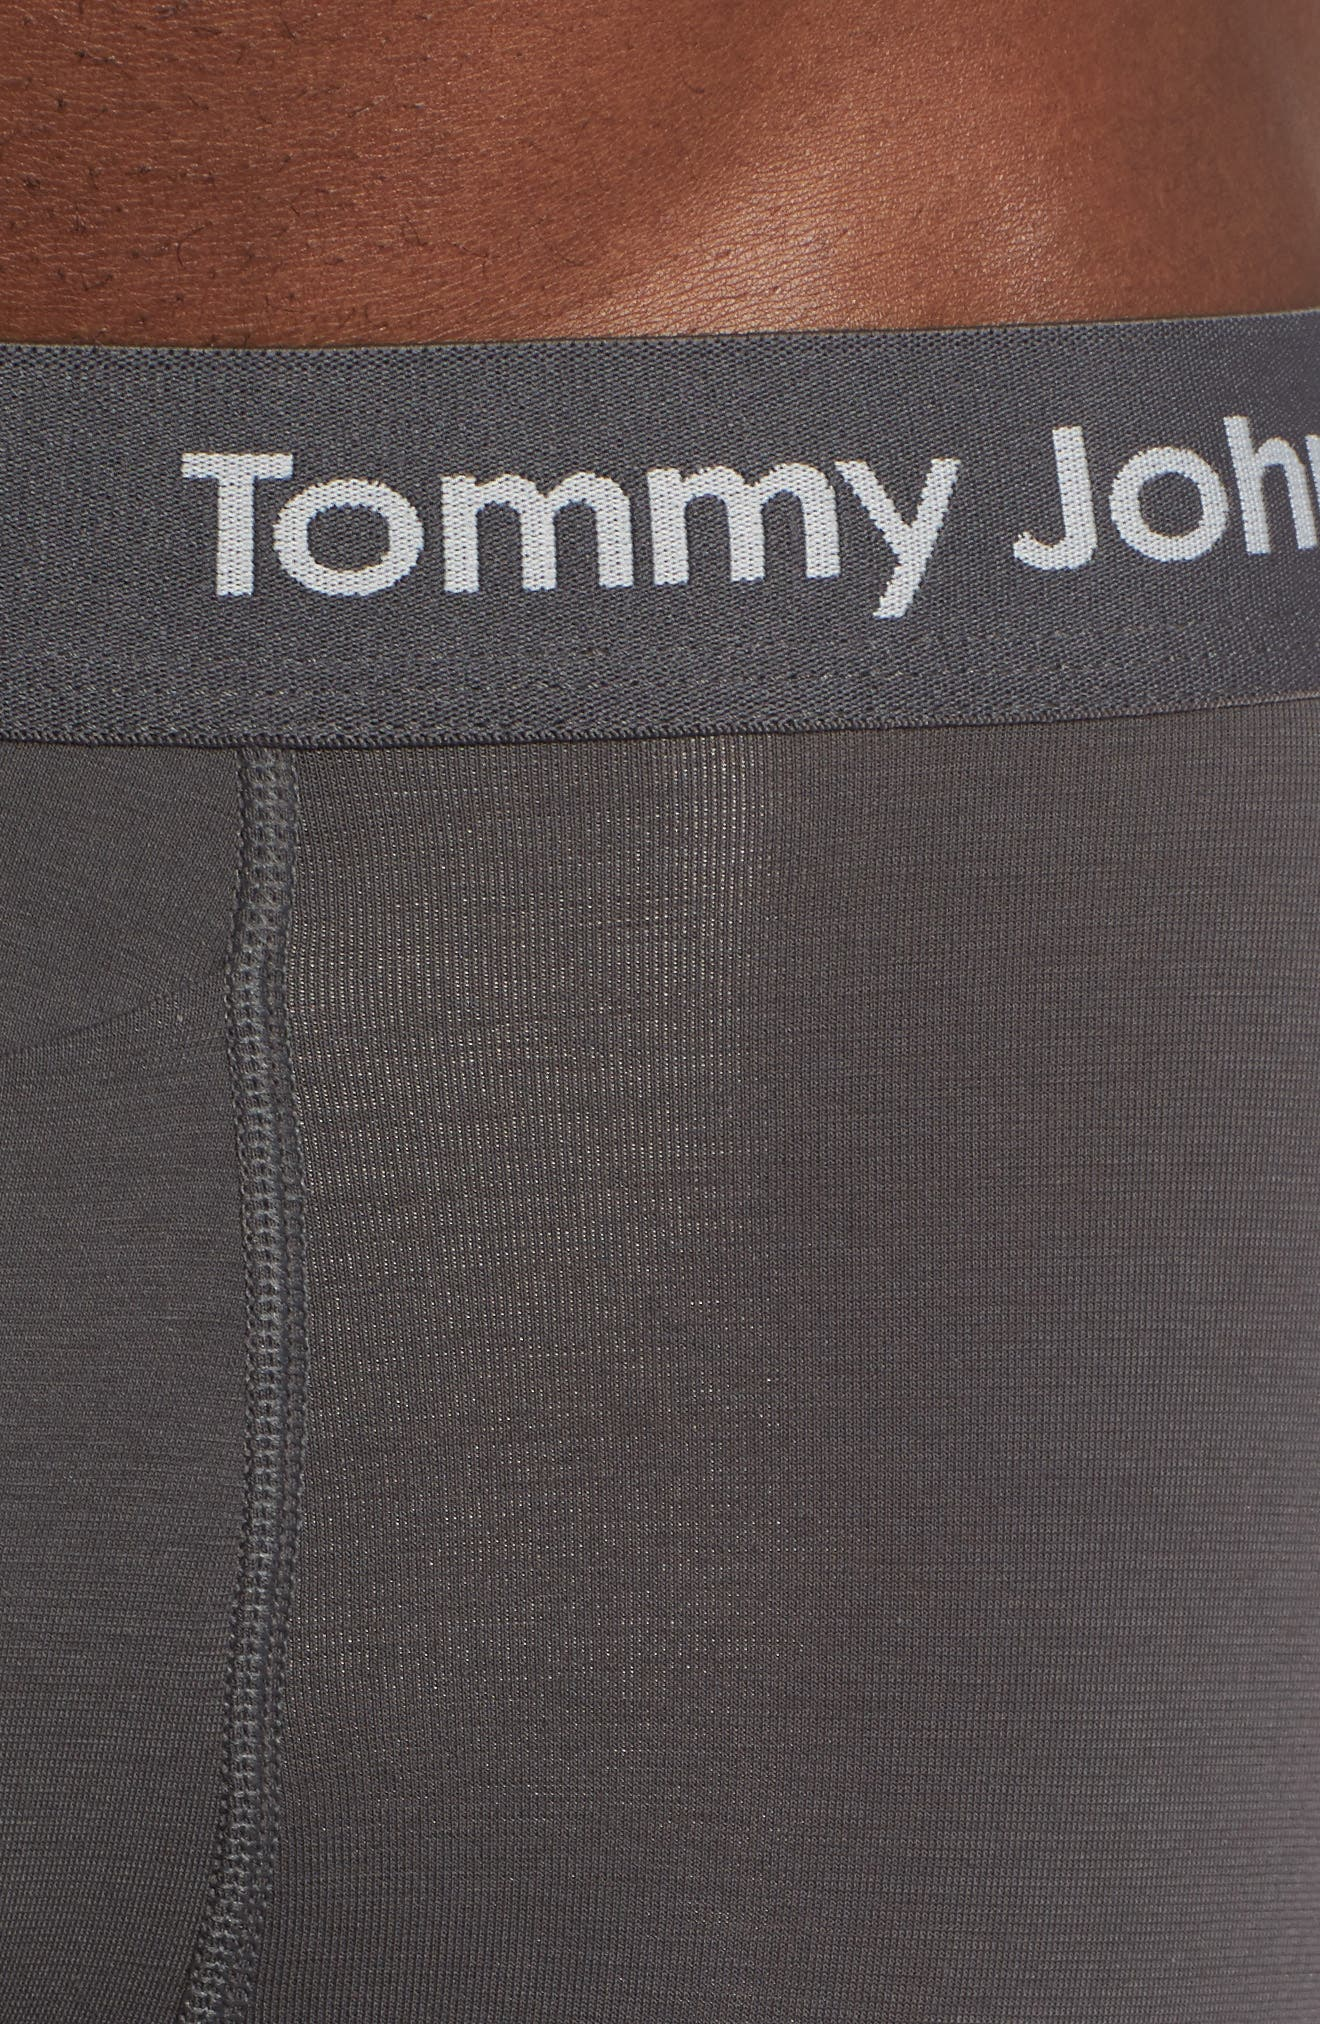 Alternate Image 4  - Tommy John Cool Cotton Trunks